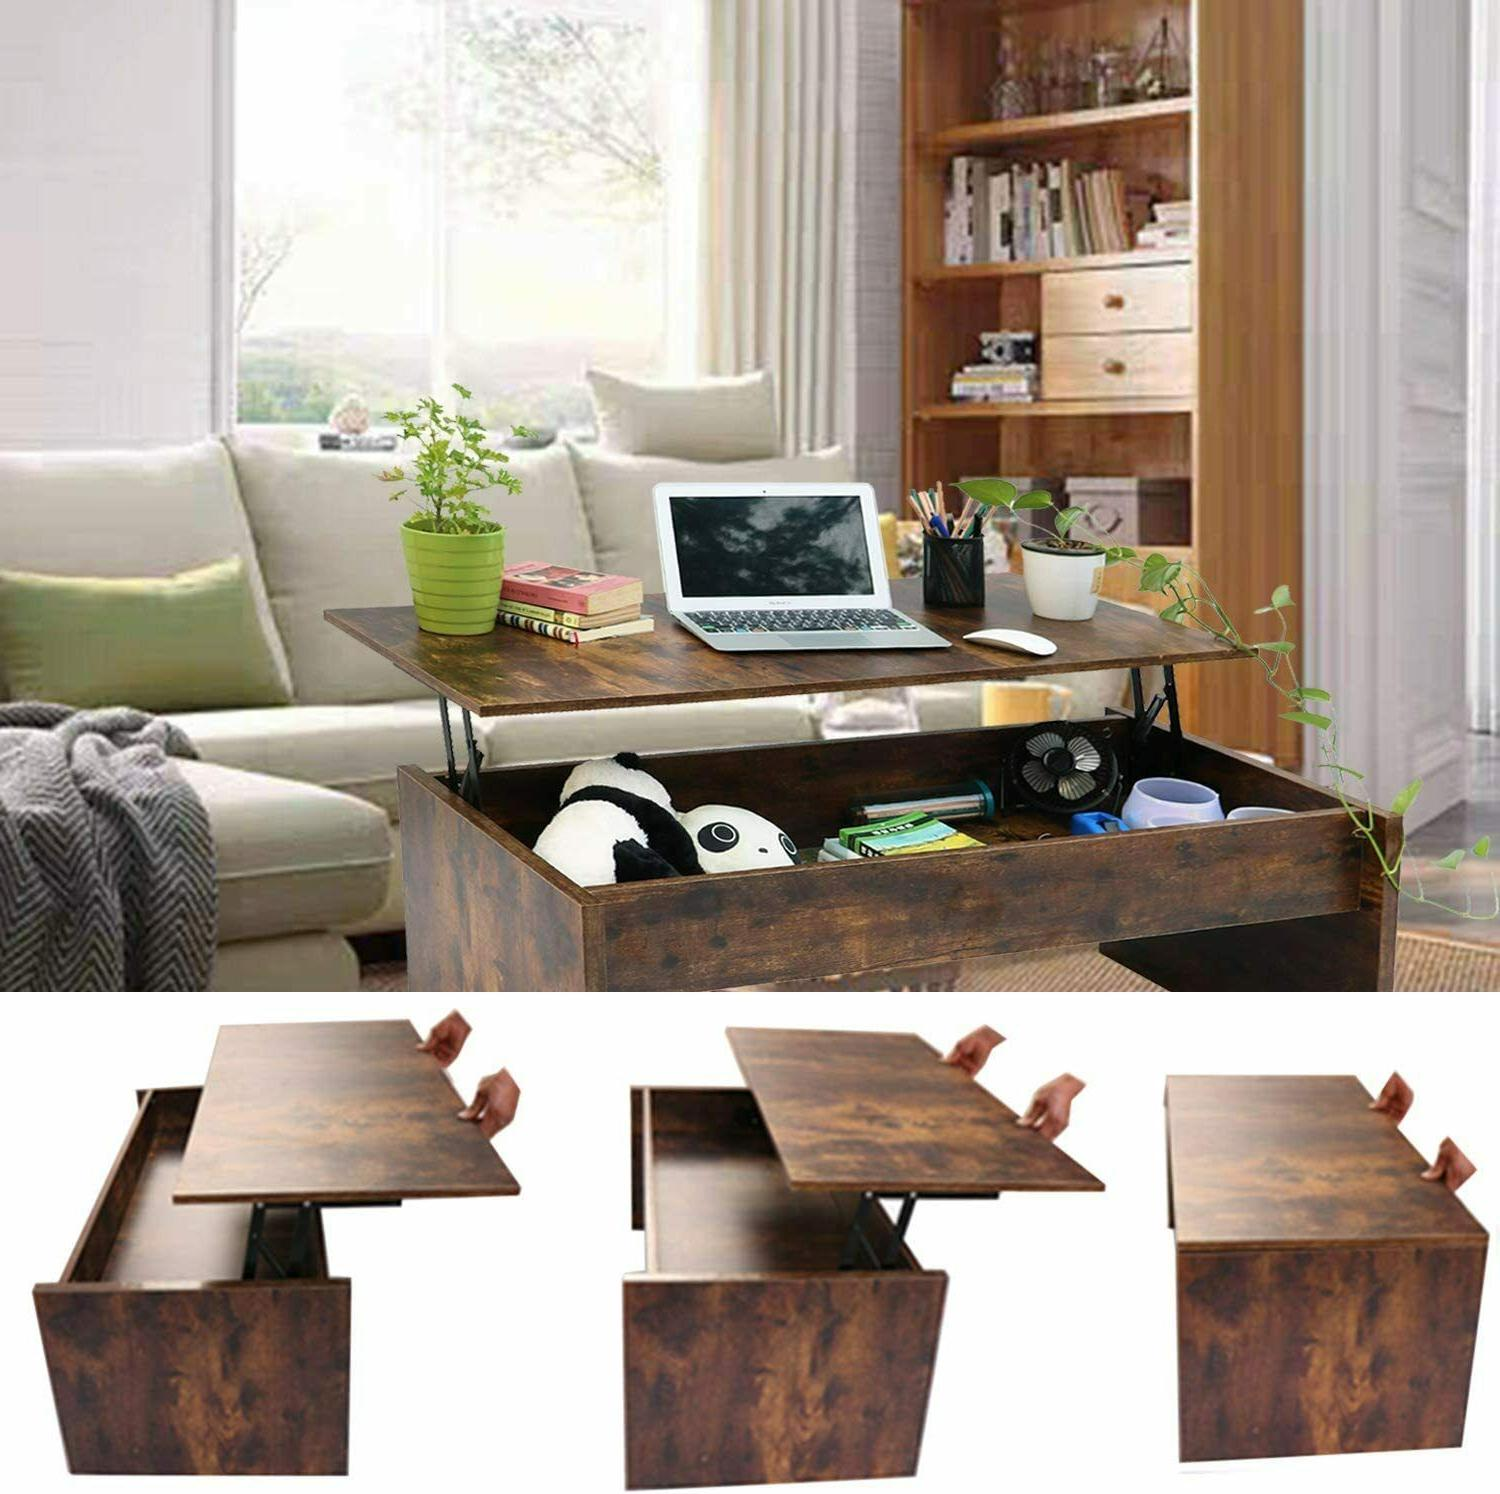 Top Coffee Table w/ Compartment Shelf Room